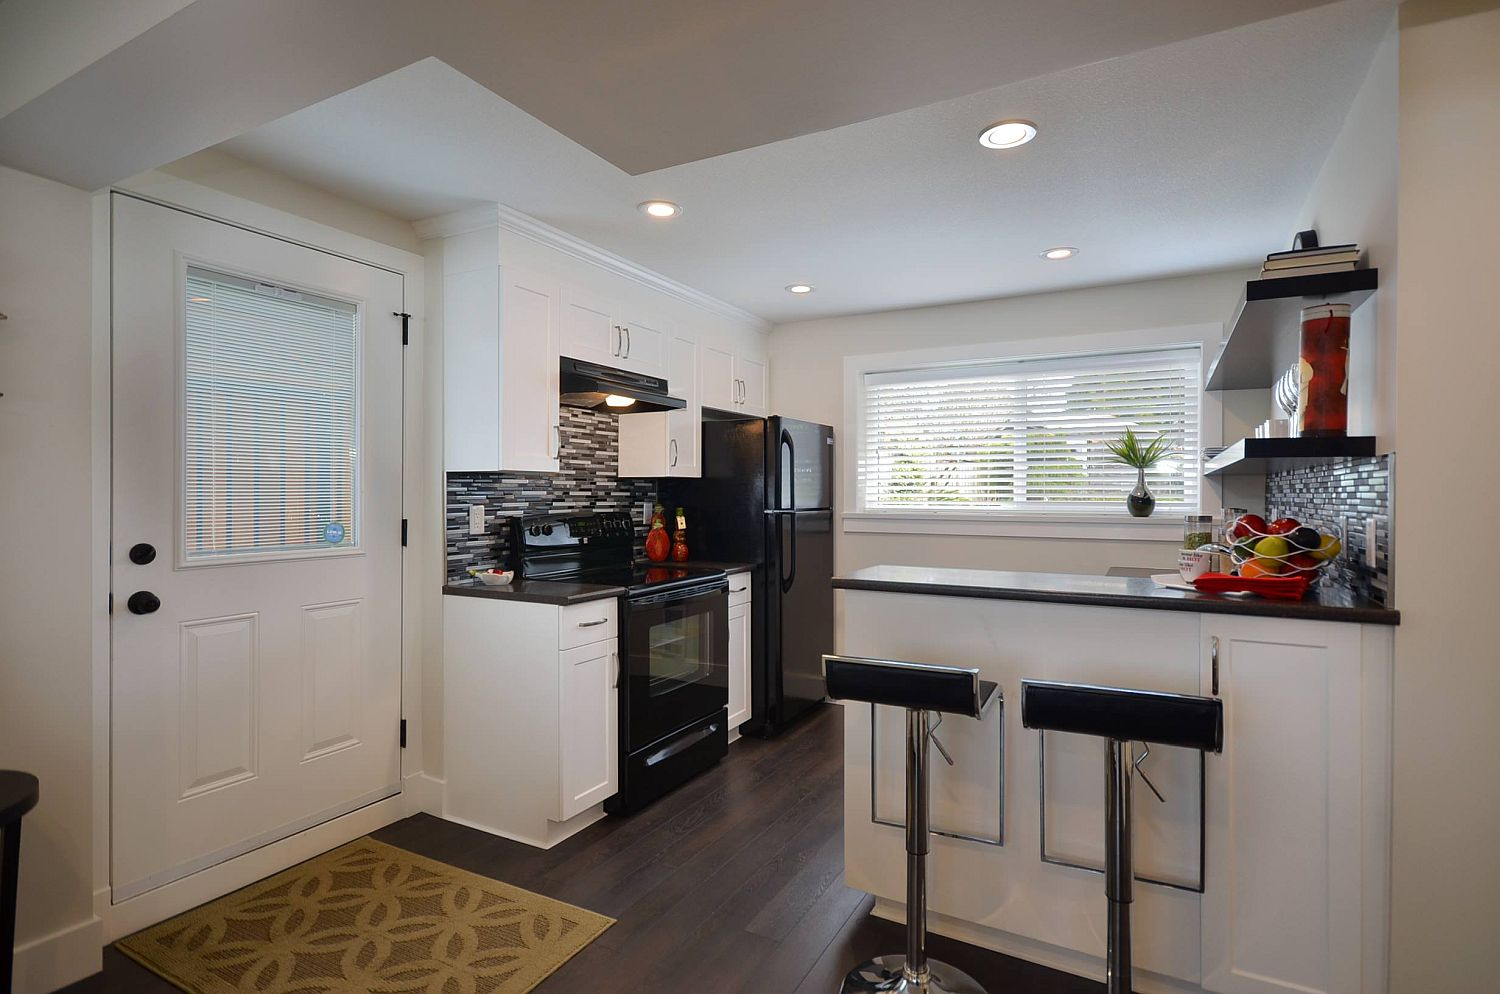 Basement apartment kitchen in white where black appliances stand out even more visually